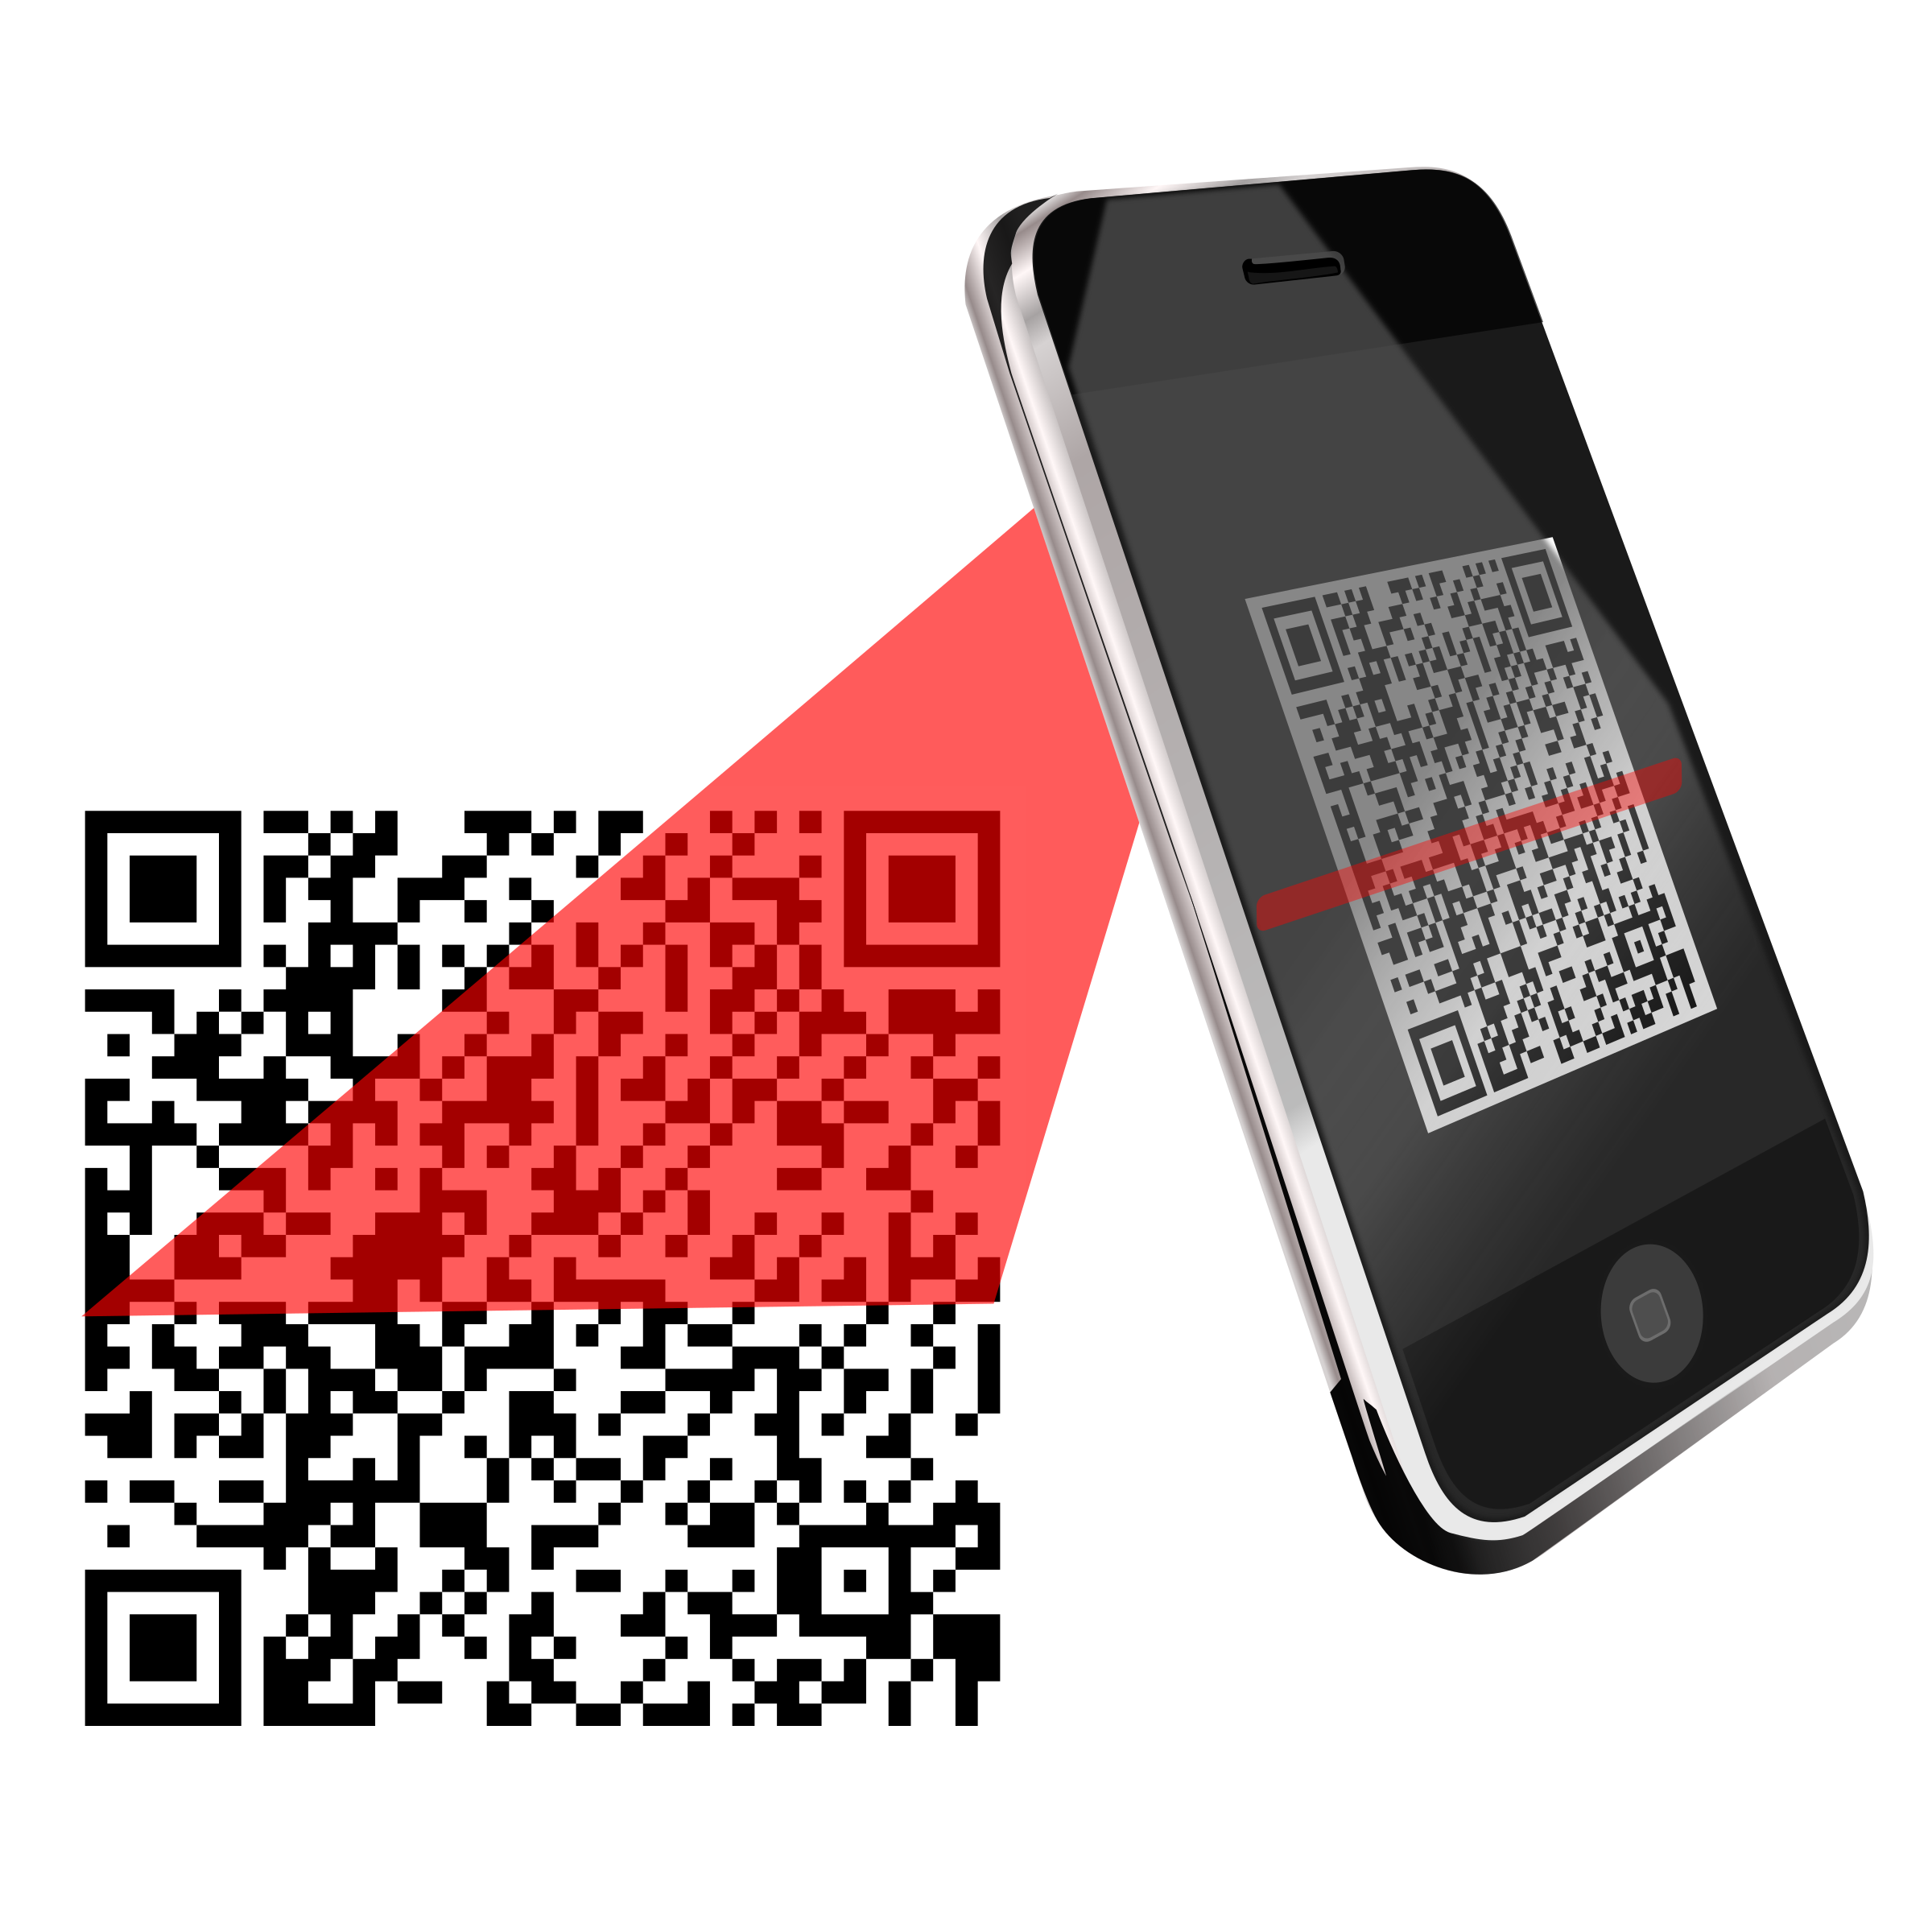 qr scanner download